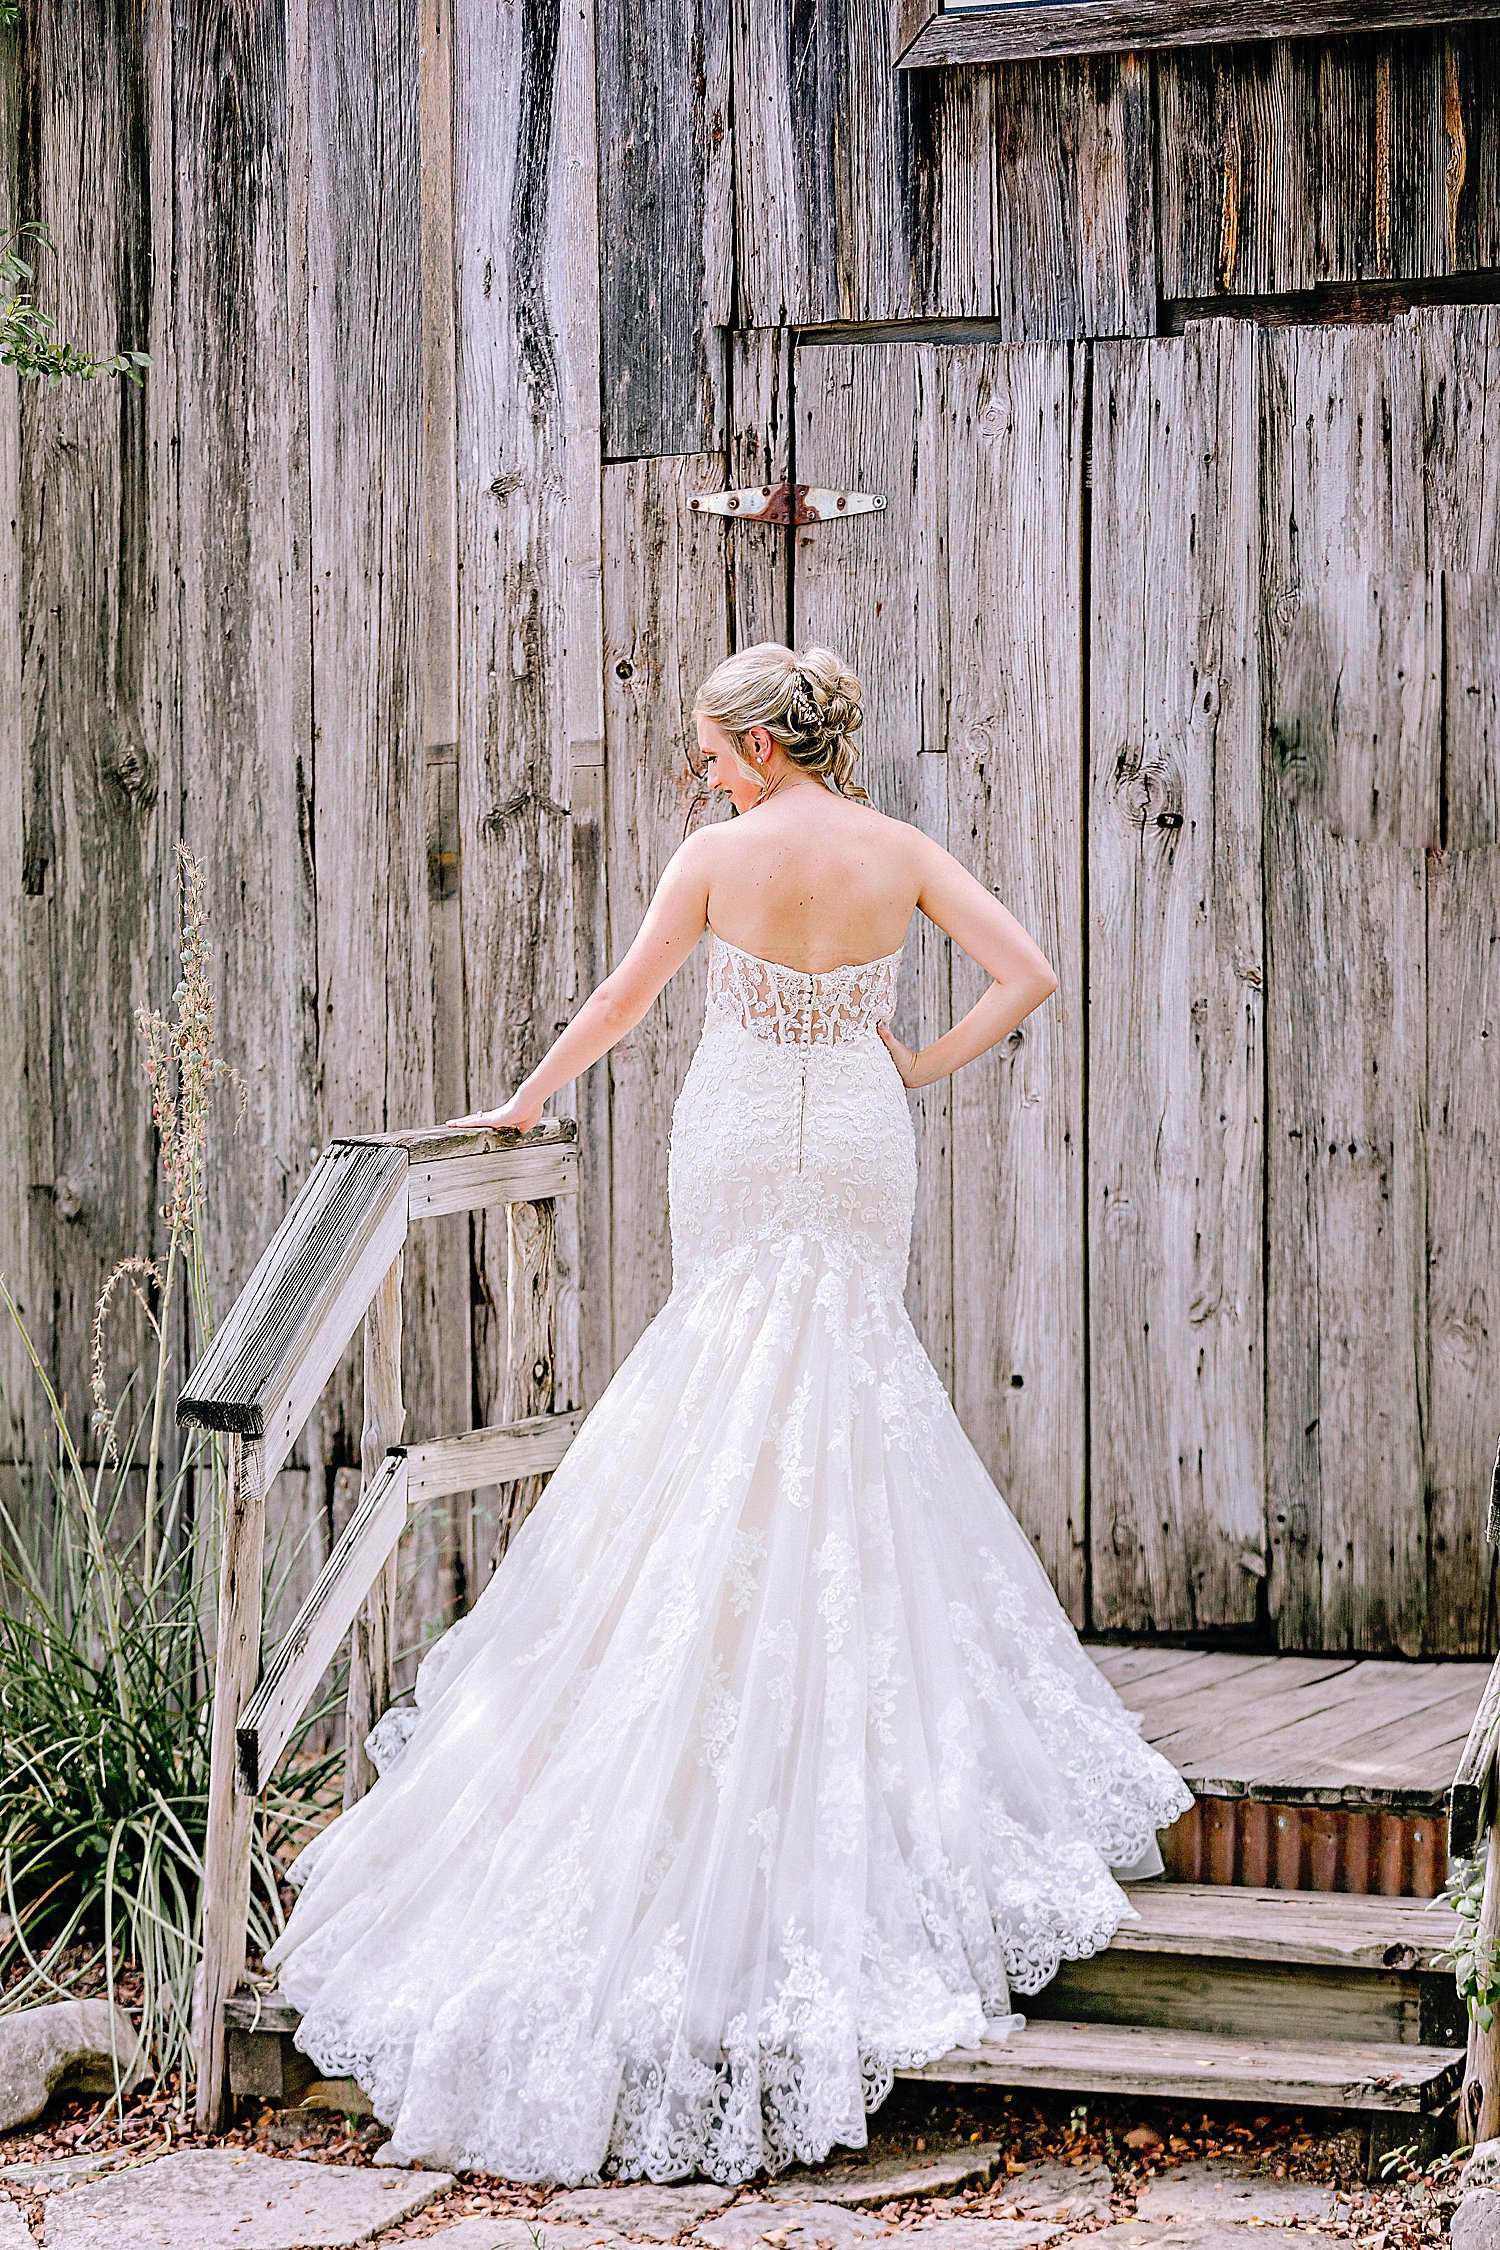 Carly-Barton-Photography-Bridal-Photos-Gruene-Rustic-New-Braunfels-Wedding-Photographer_0022.jpg